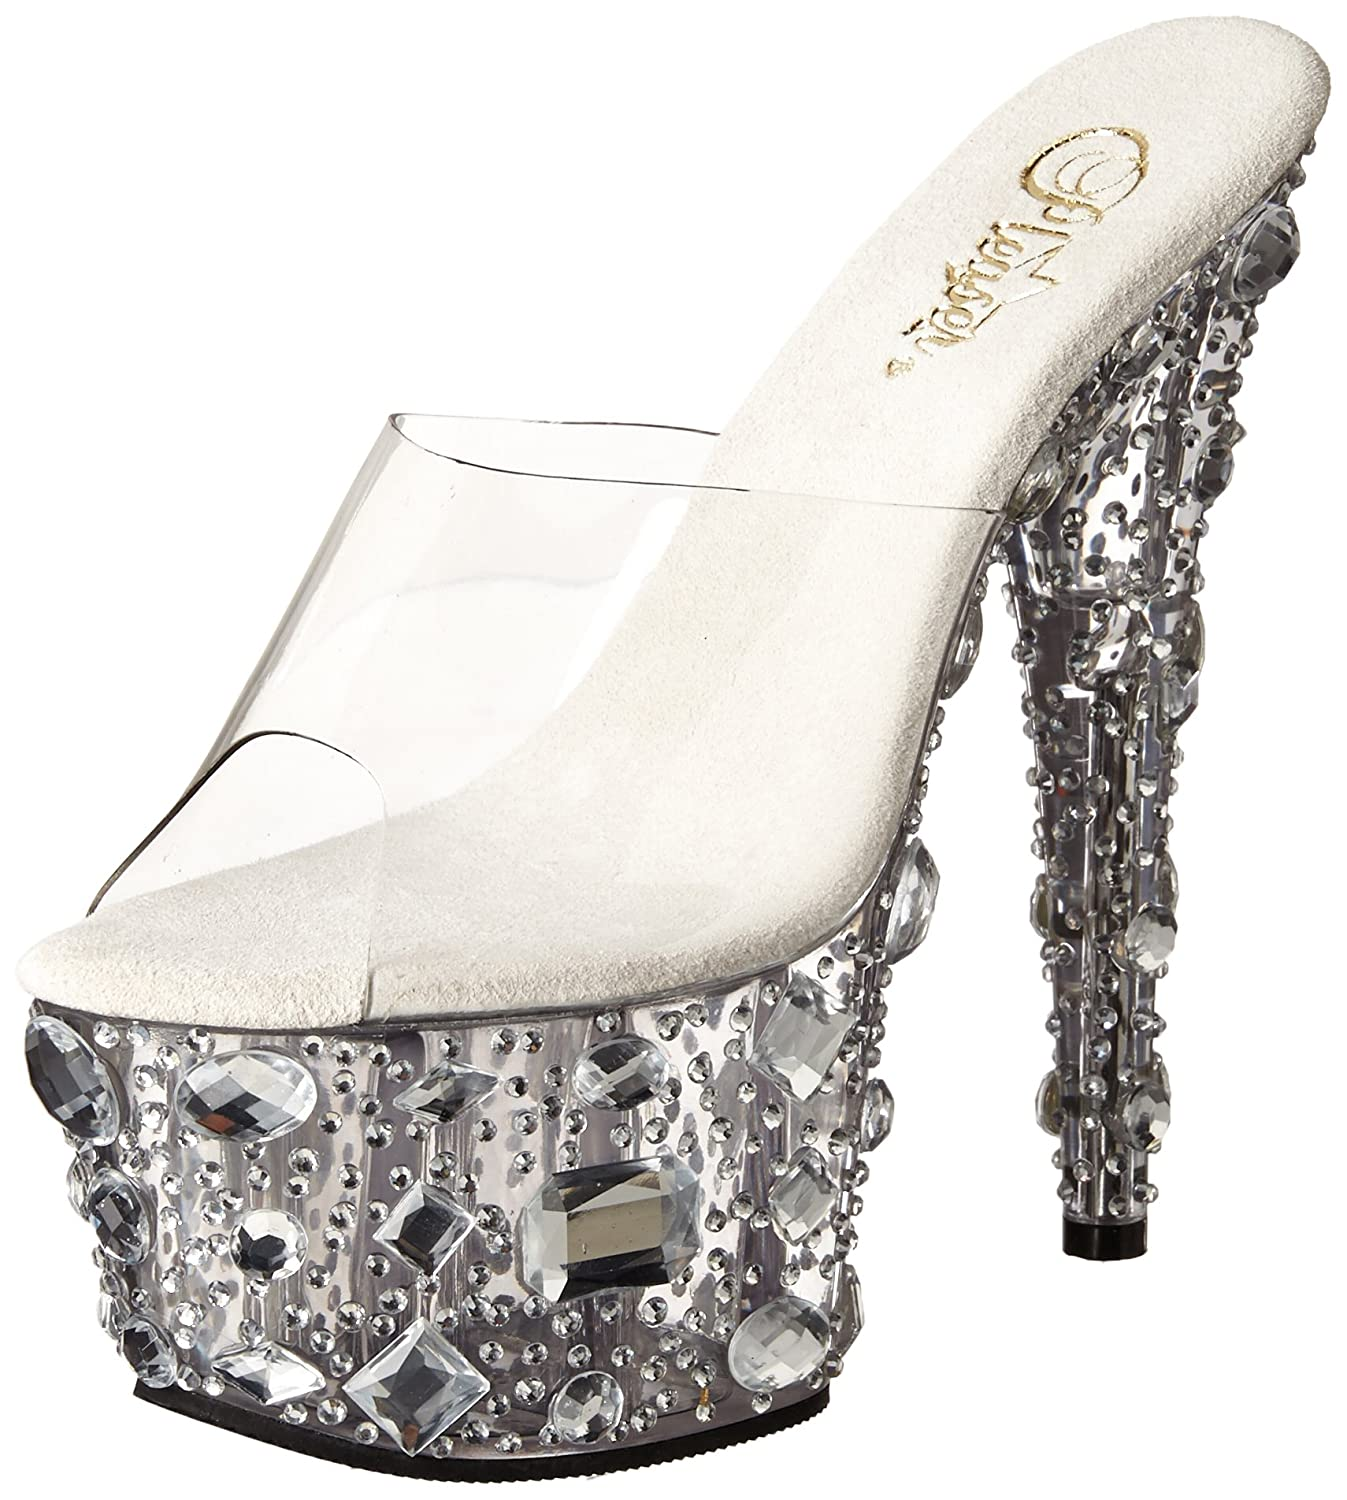 Pleaser Women's Adore-701MR/C/M Platform Sandal B00B471160 12 B(M) US|Clear/Clear